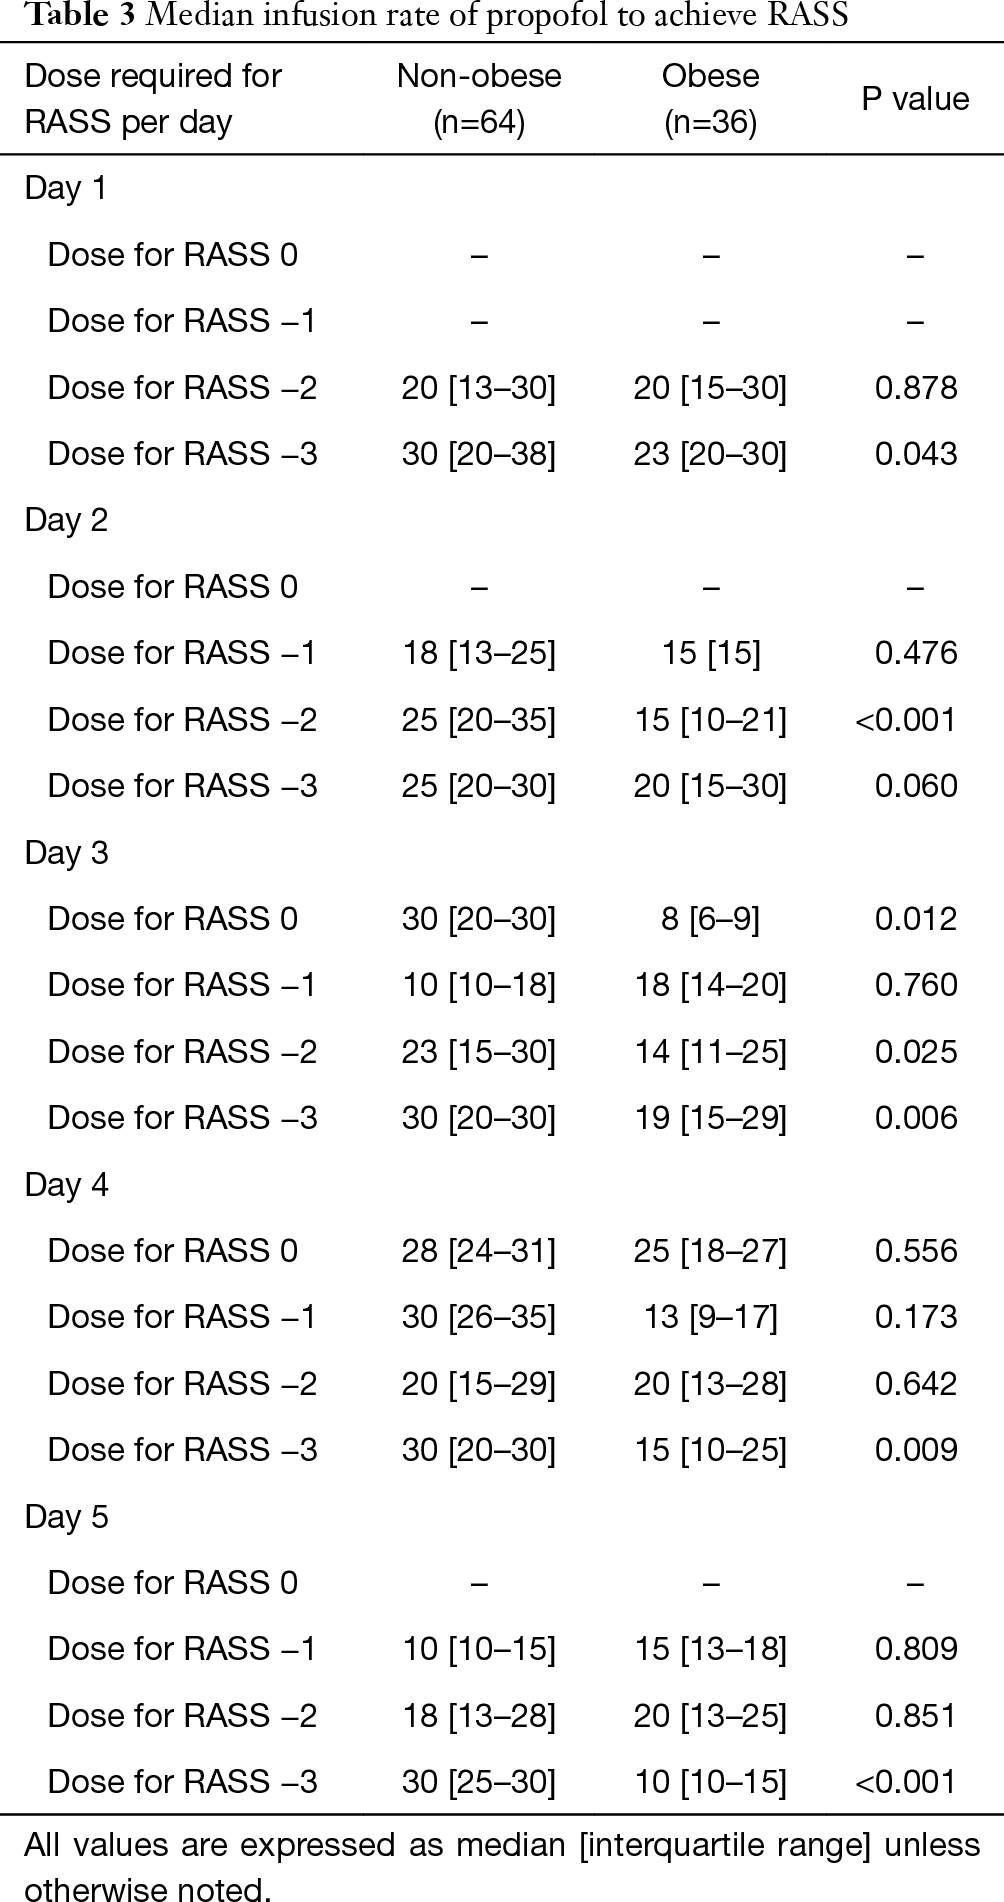 Effect Of Obesity On Propofol Dosing Requirements In Mechanically